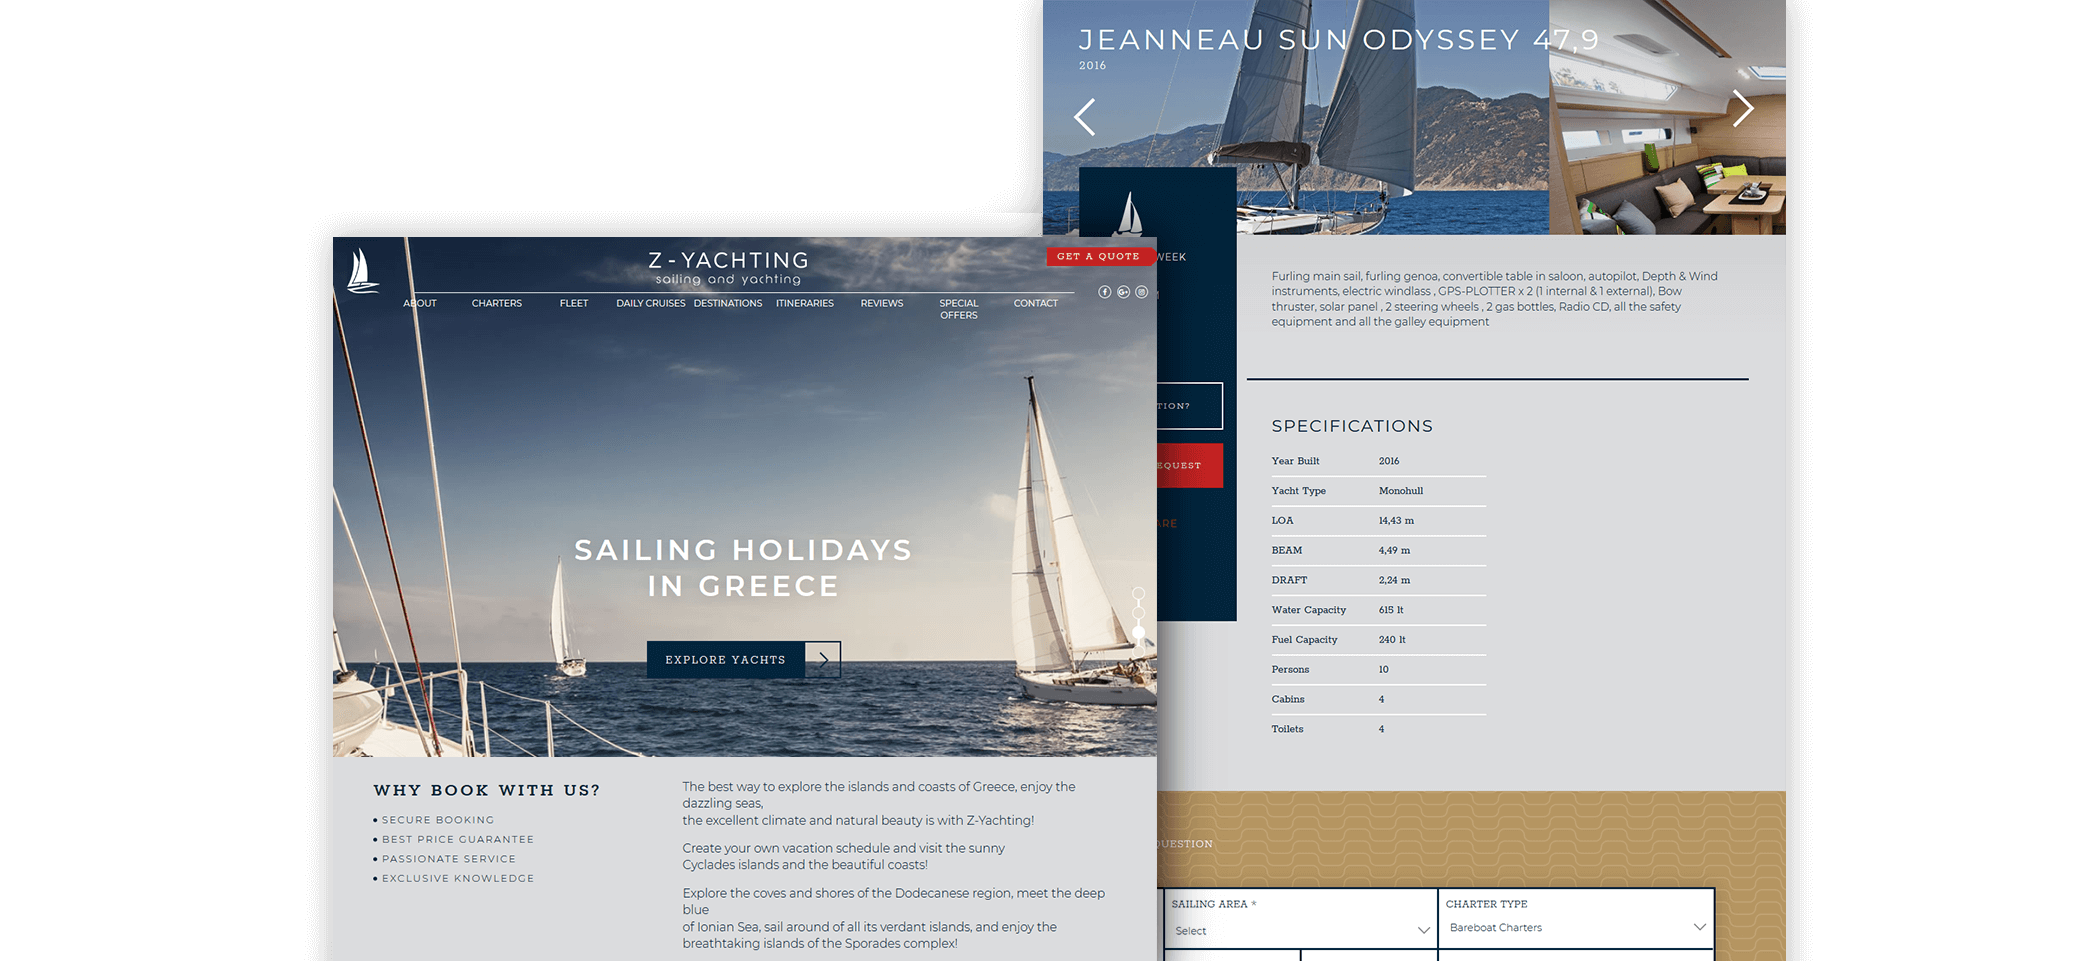 z-yachting featured